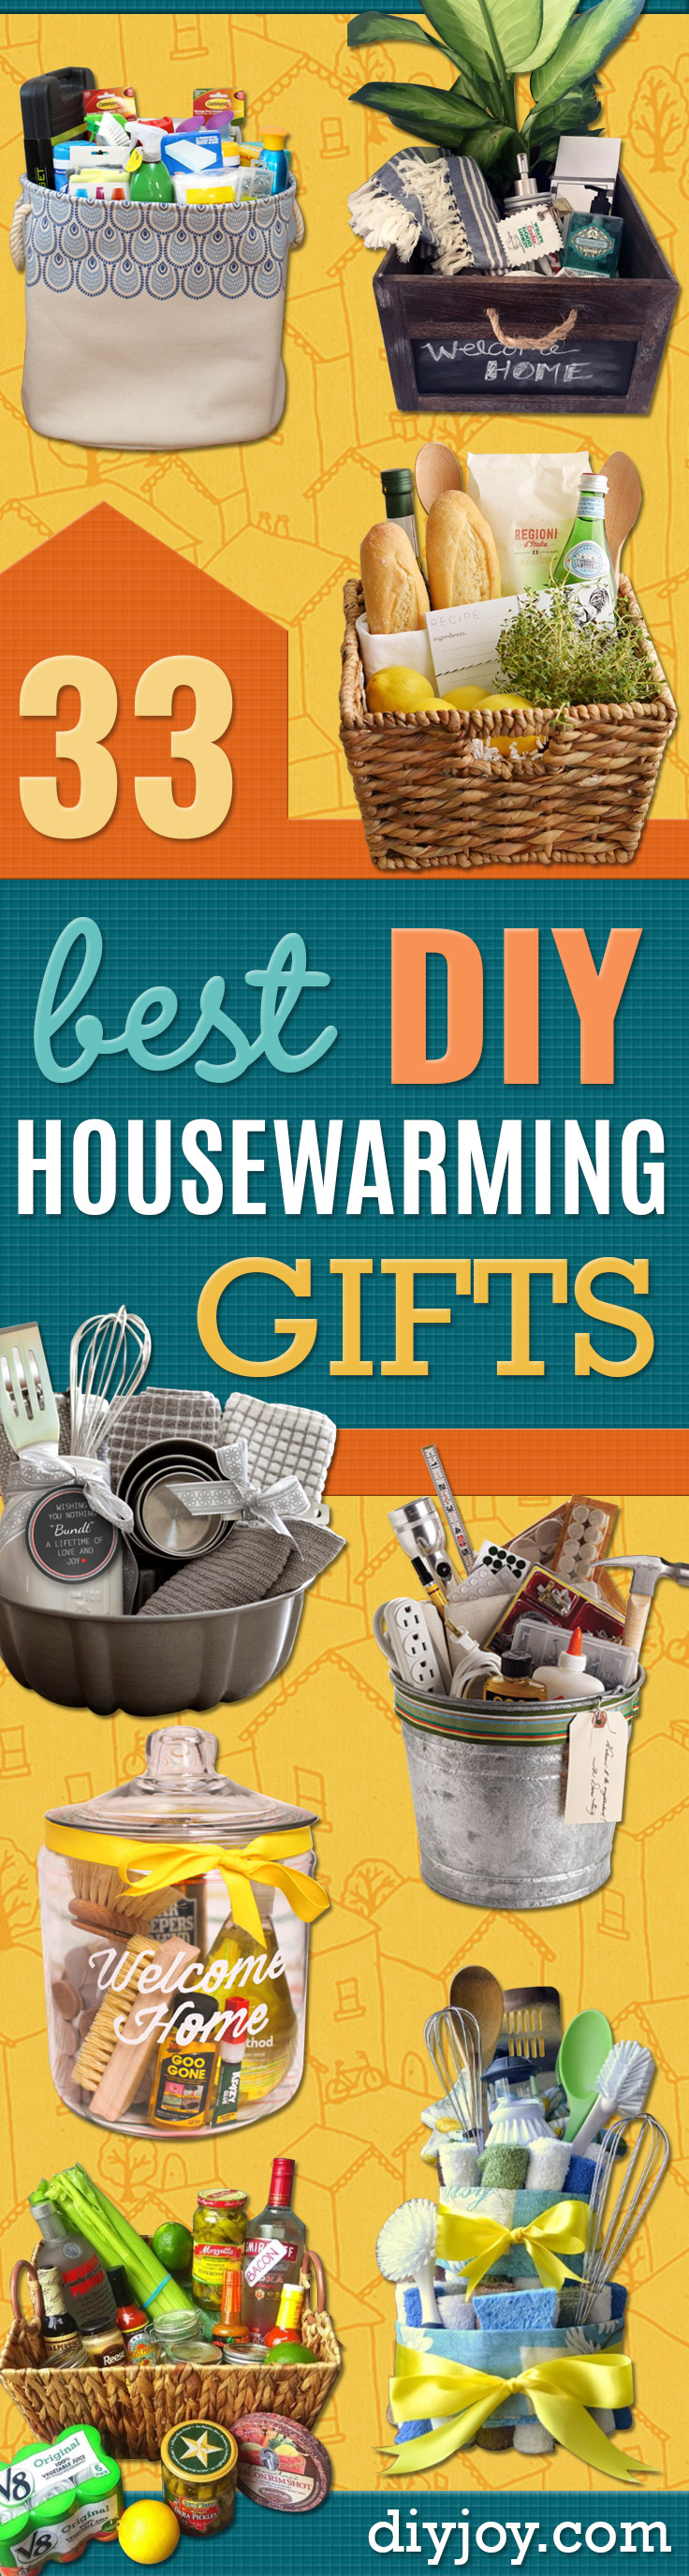 DIY Housewarming Gifts - Best Do It Yourself Gift Ideas for Friends With A New House, Home or Apartment - Creative, Cheap and Quick Crafts and DIY Ideas for Housewarming Presents - Mason Jar Gifts, Baskets, Gifts for Women and Men